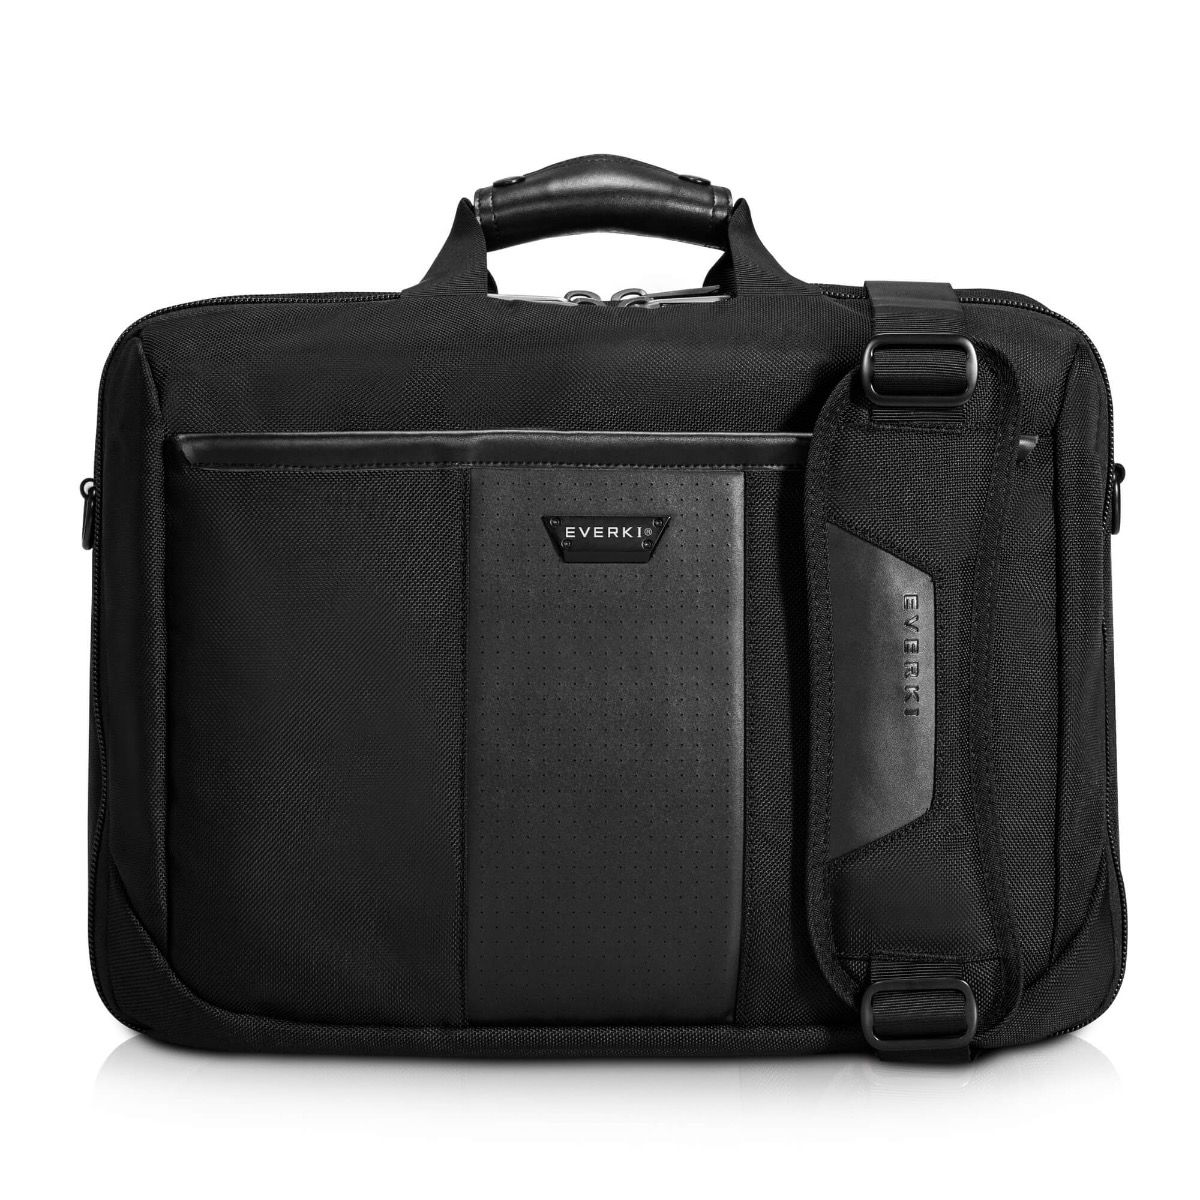 EVERKI Versa Travel Friendly 17 Inch Laptop Briefcase